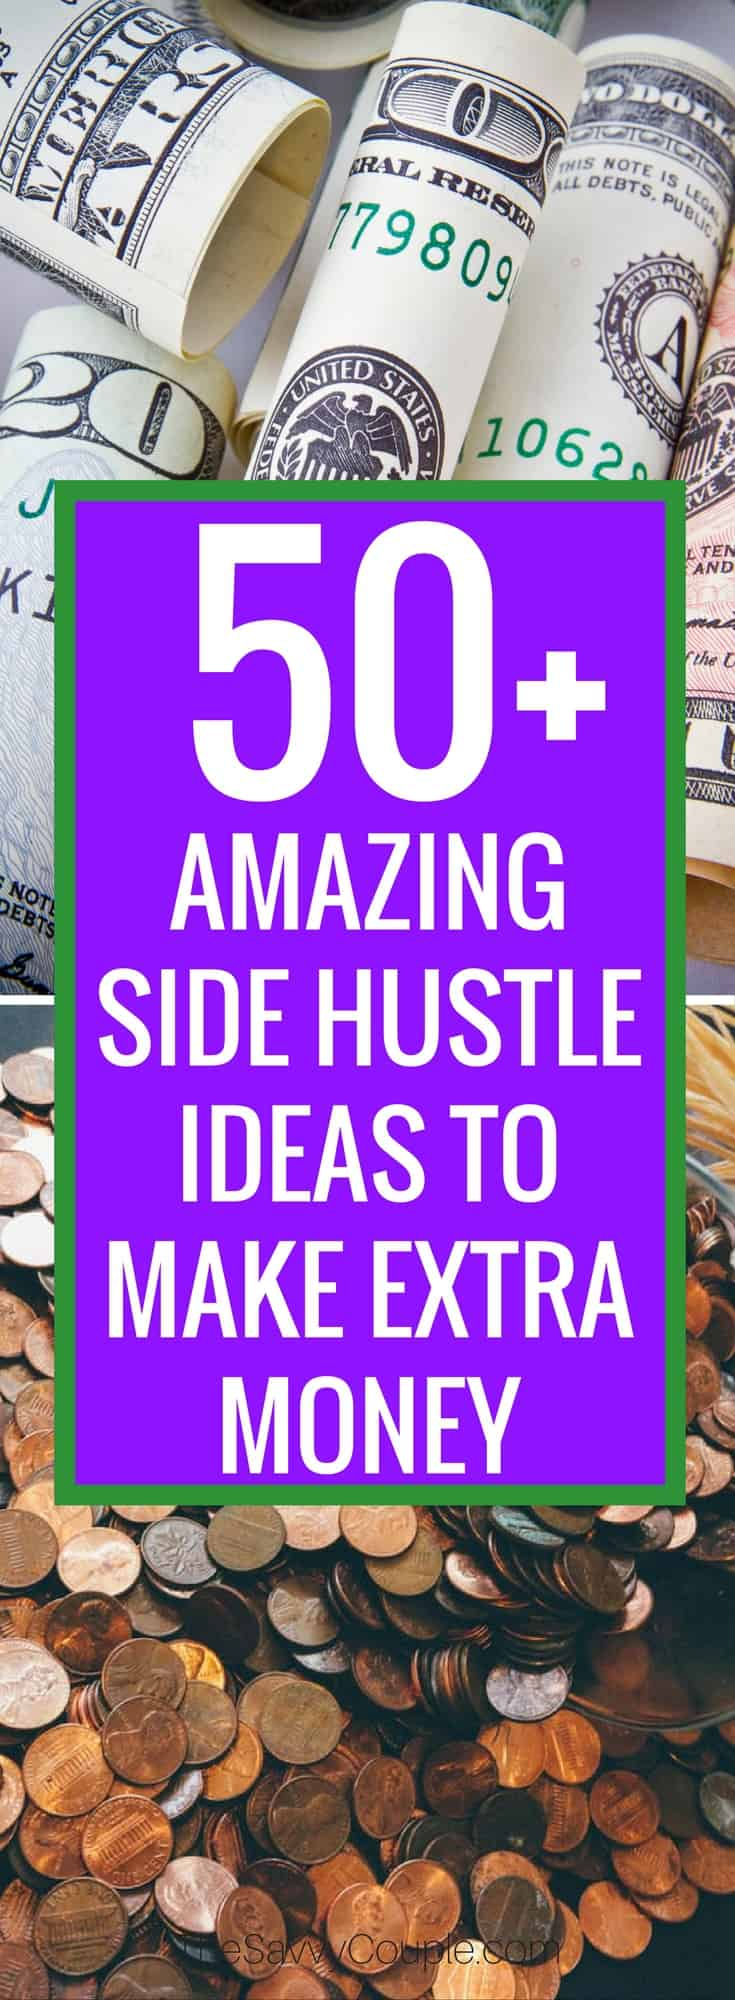 Looking for ways to earn extra money? This side hustle list has it all! From the quick buck to full-fledged startup, there is something for everyone on this list. Make Money From Home | Extra Cash | Stay At Home Mom | College Student | Entrepreneur